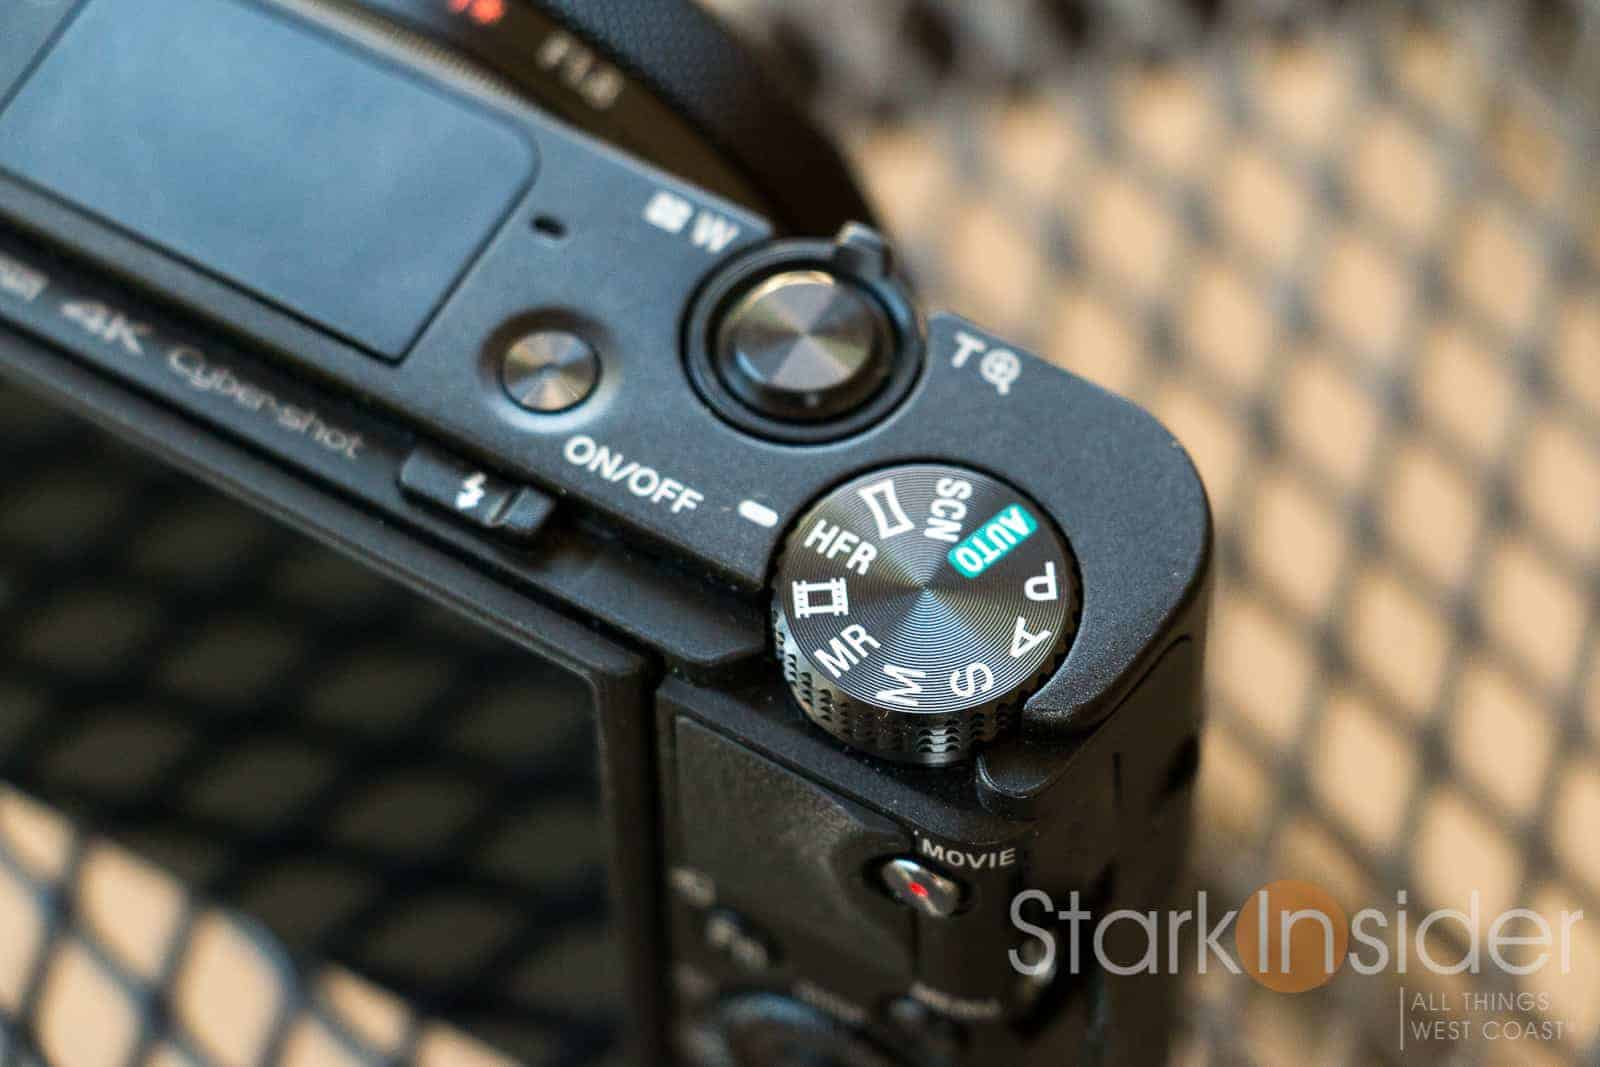 Sony RX100 IV: 5 killer features in Sony's new compact camera